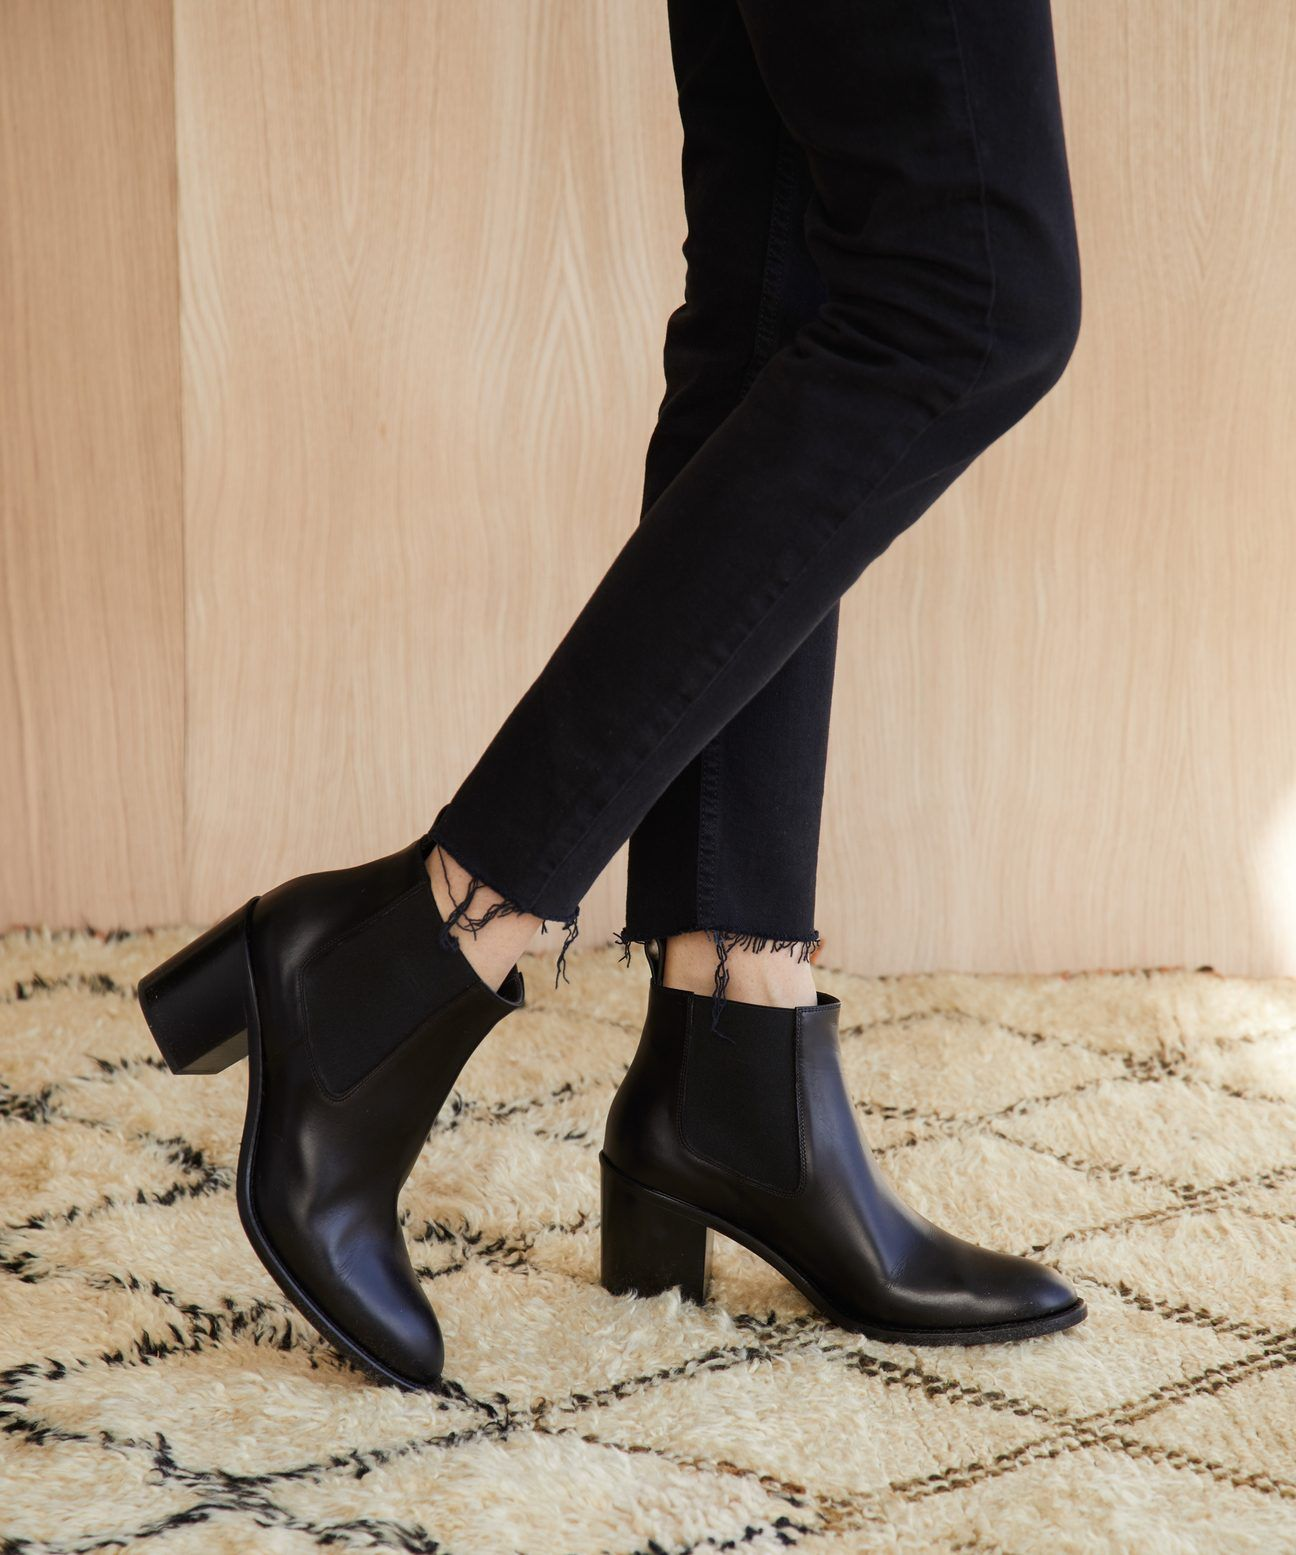 Heeled Chelsea Boot Black Boots Outfit Ankle Ankle Boots Outfit Summer Black Heeled Boots Outfit